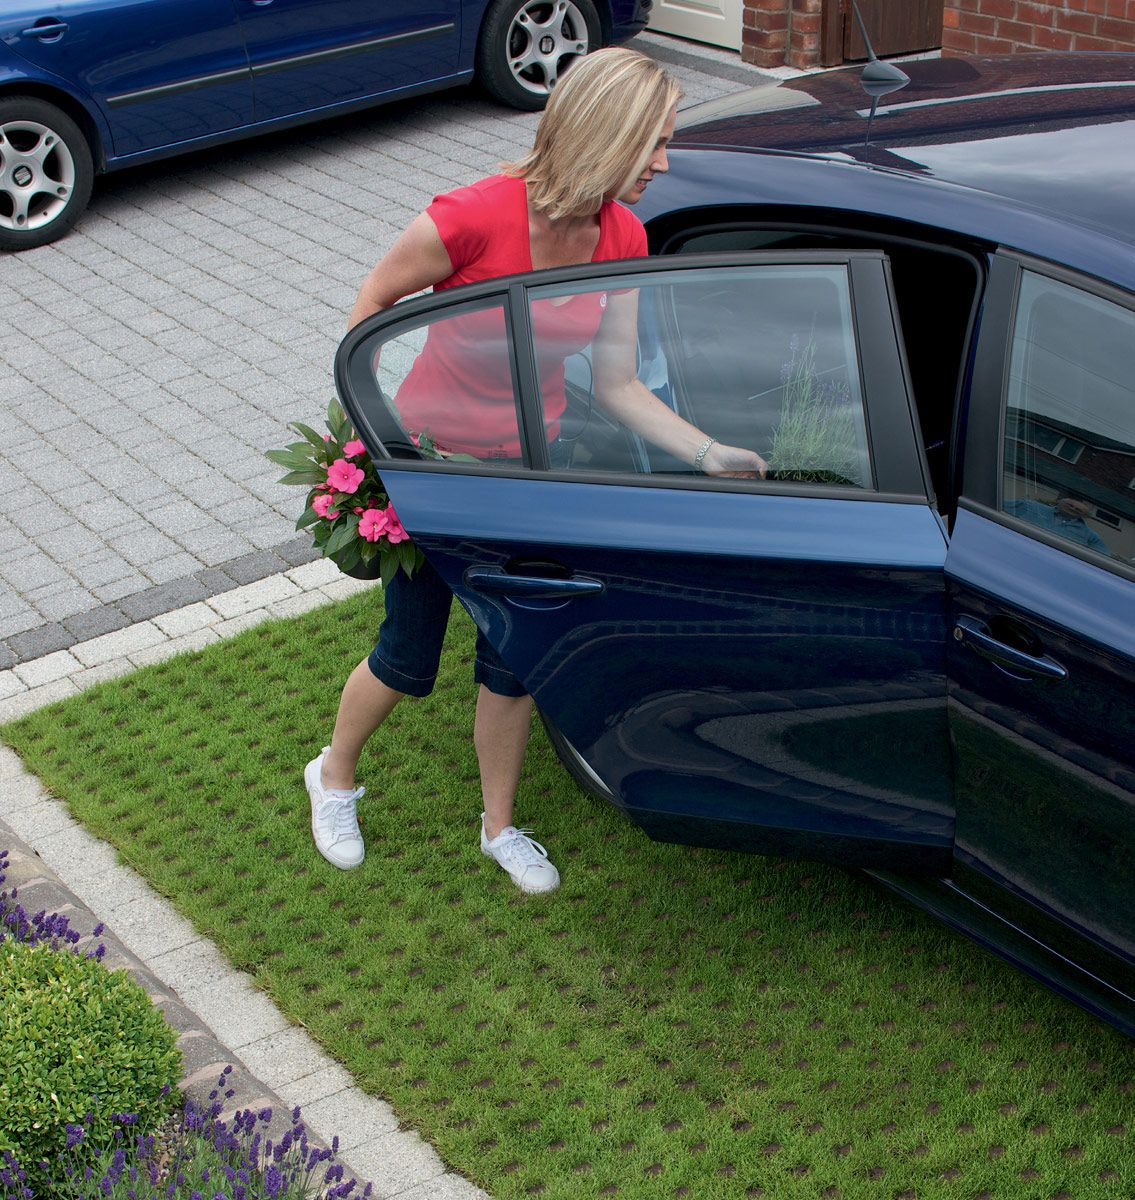 Explore Driveway Paving Ideas And More